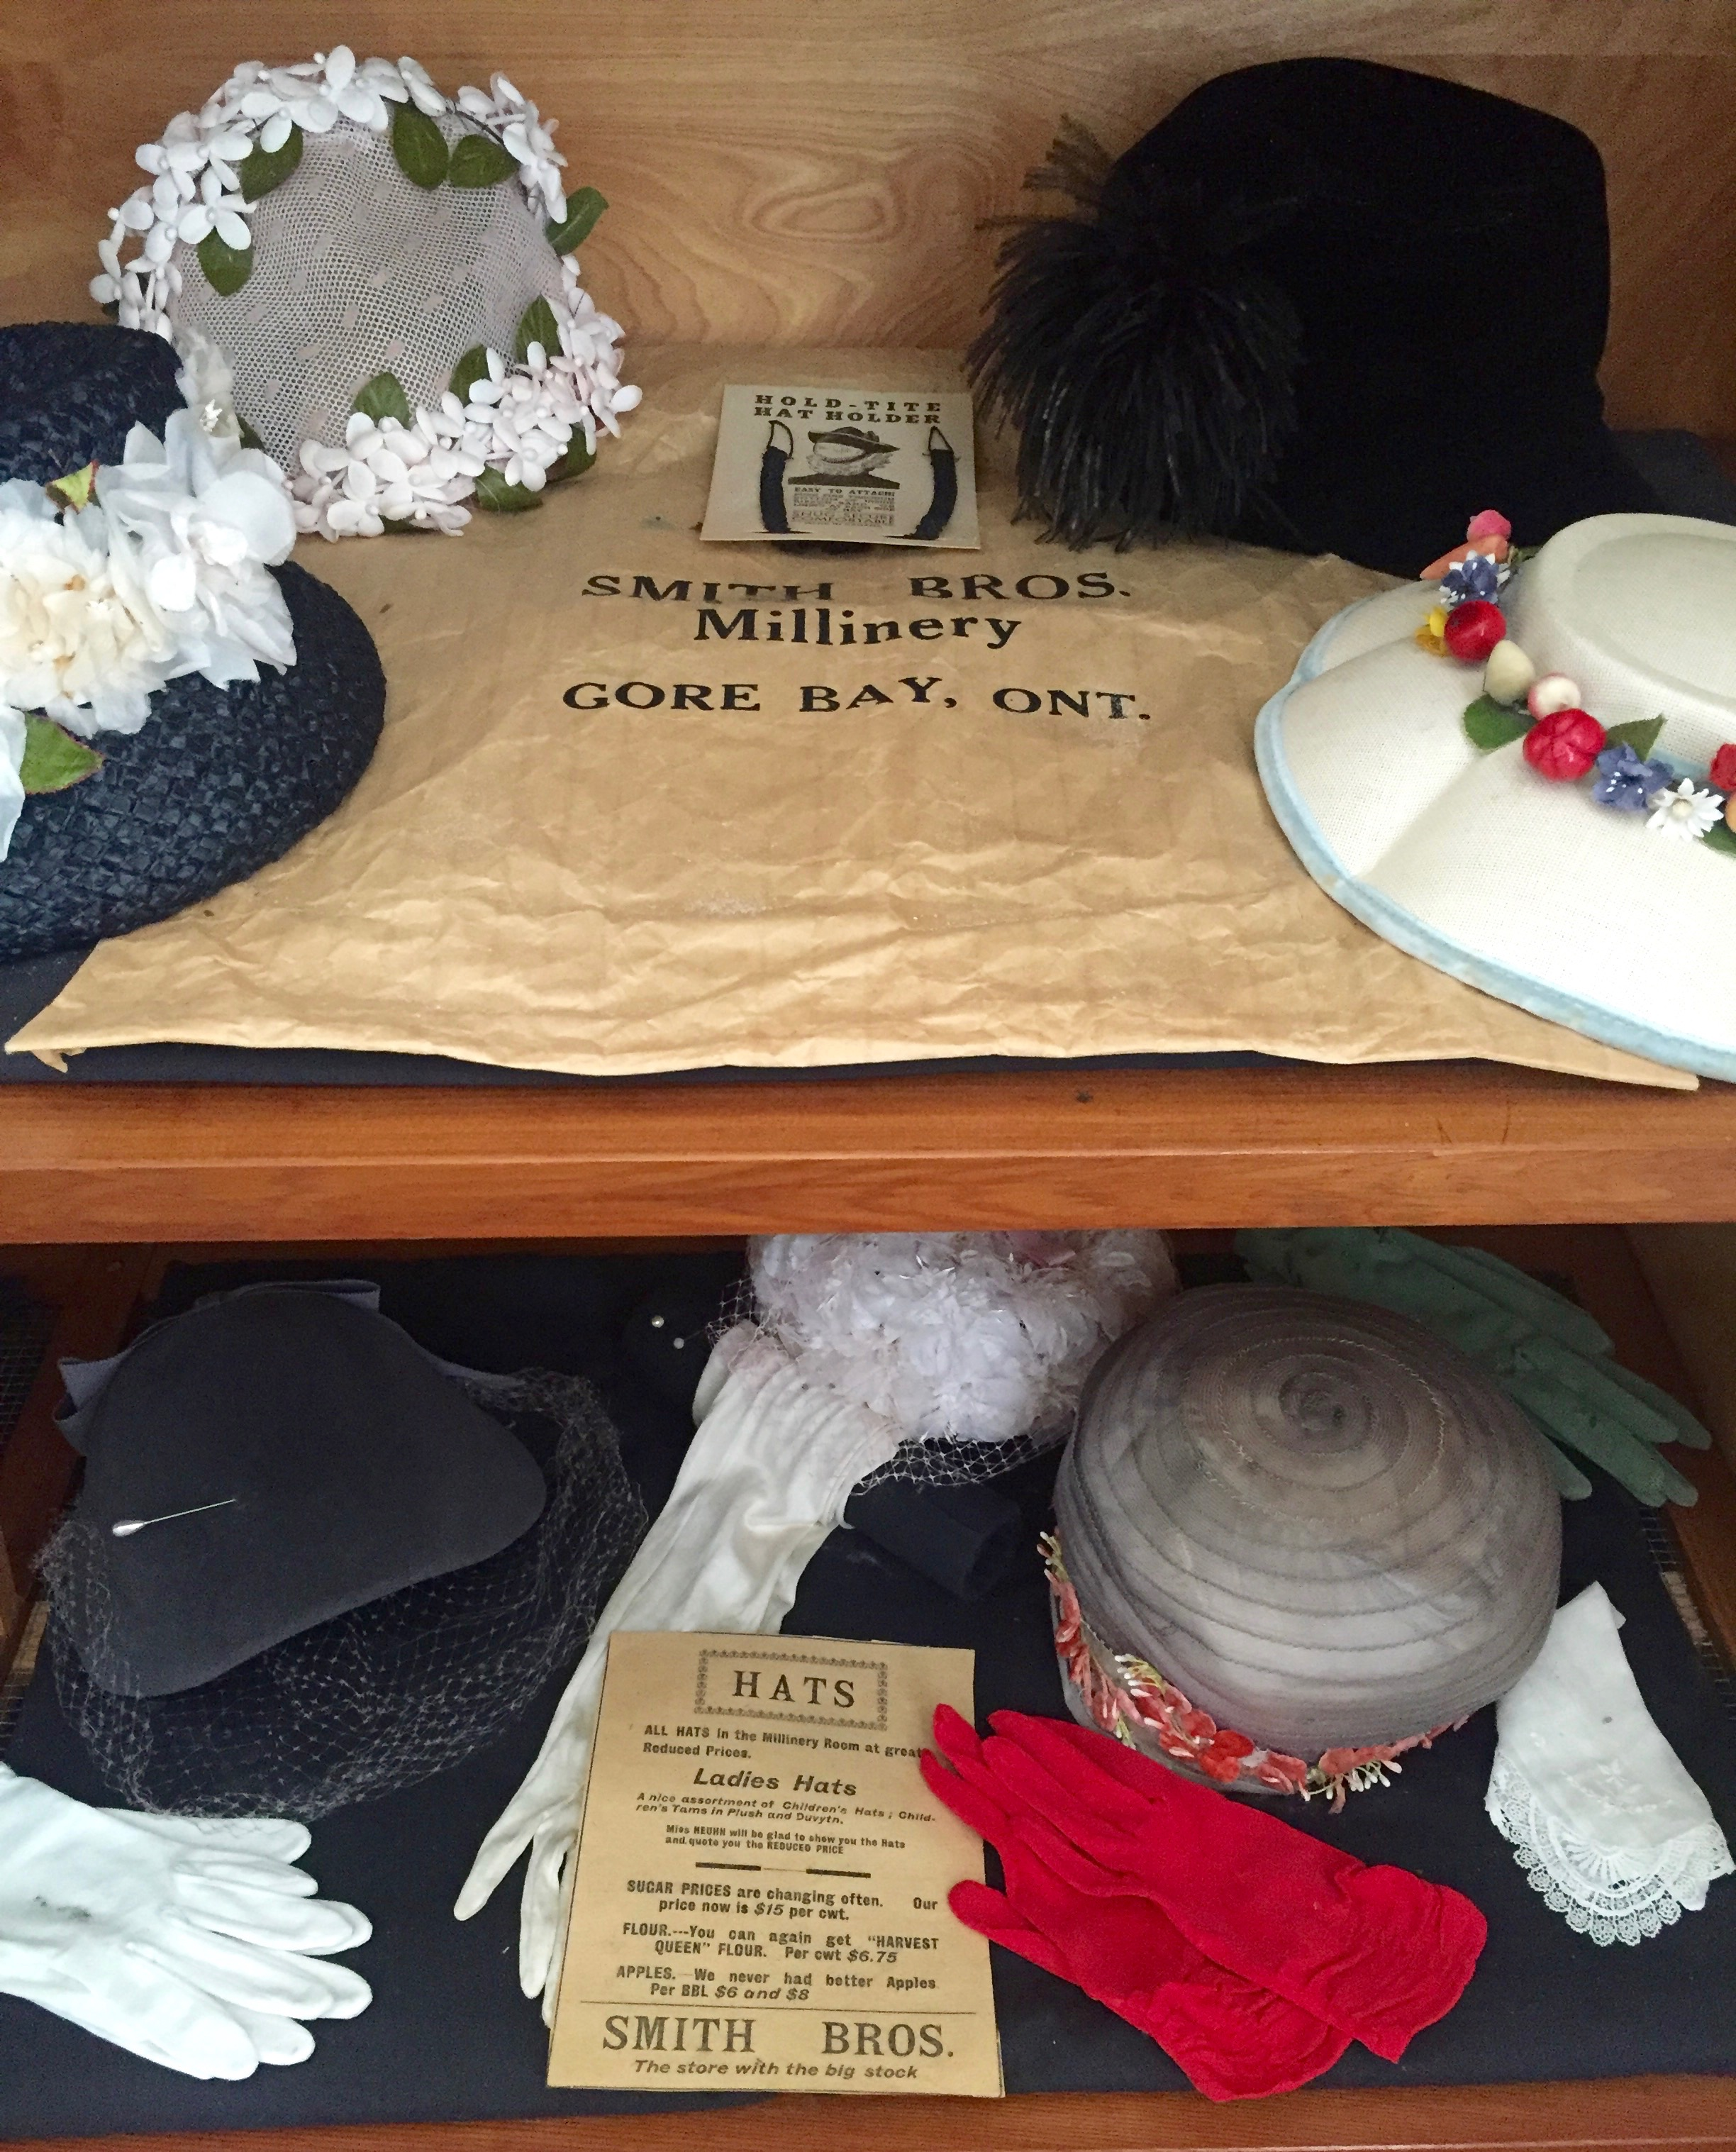 Smith Bros. Millinery